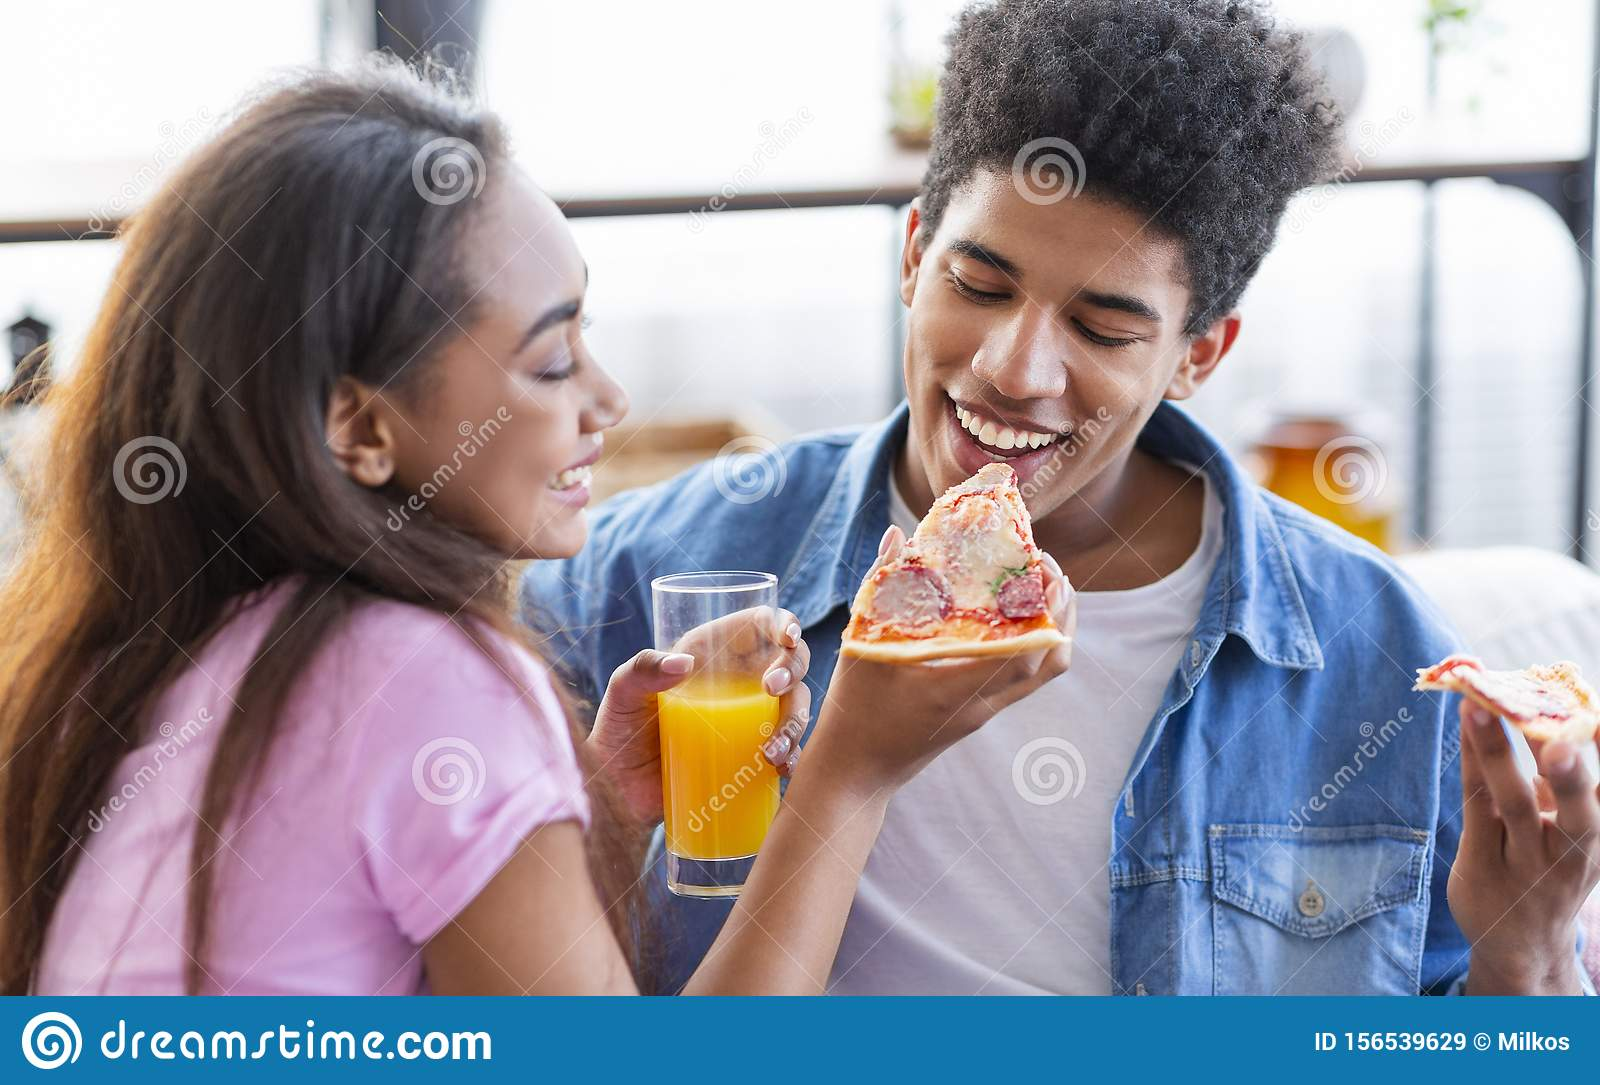 Lovely African American Couple Sharing Pizza On Date At